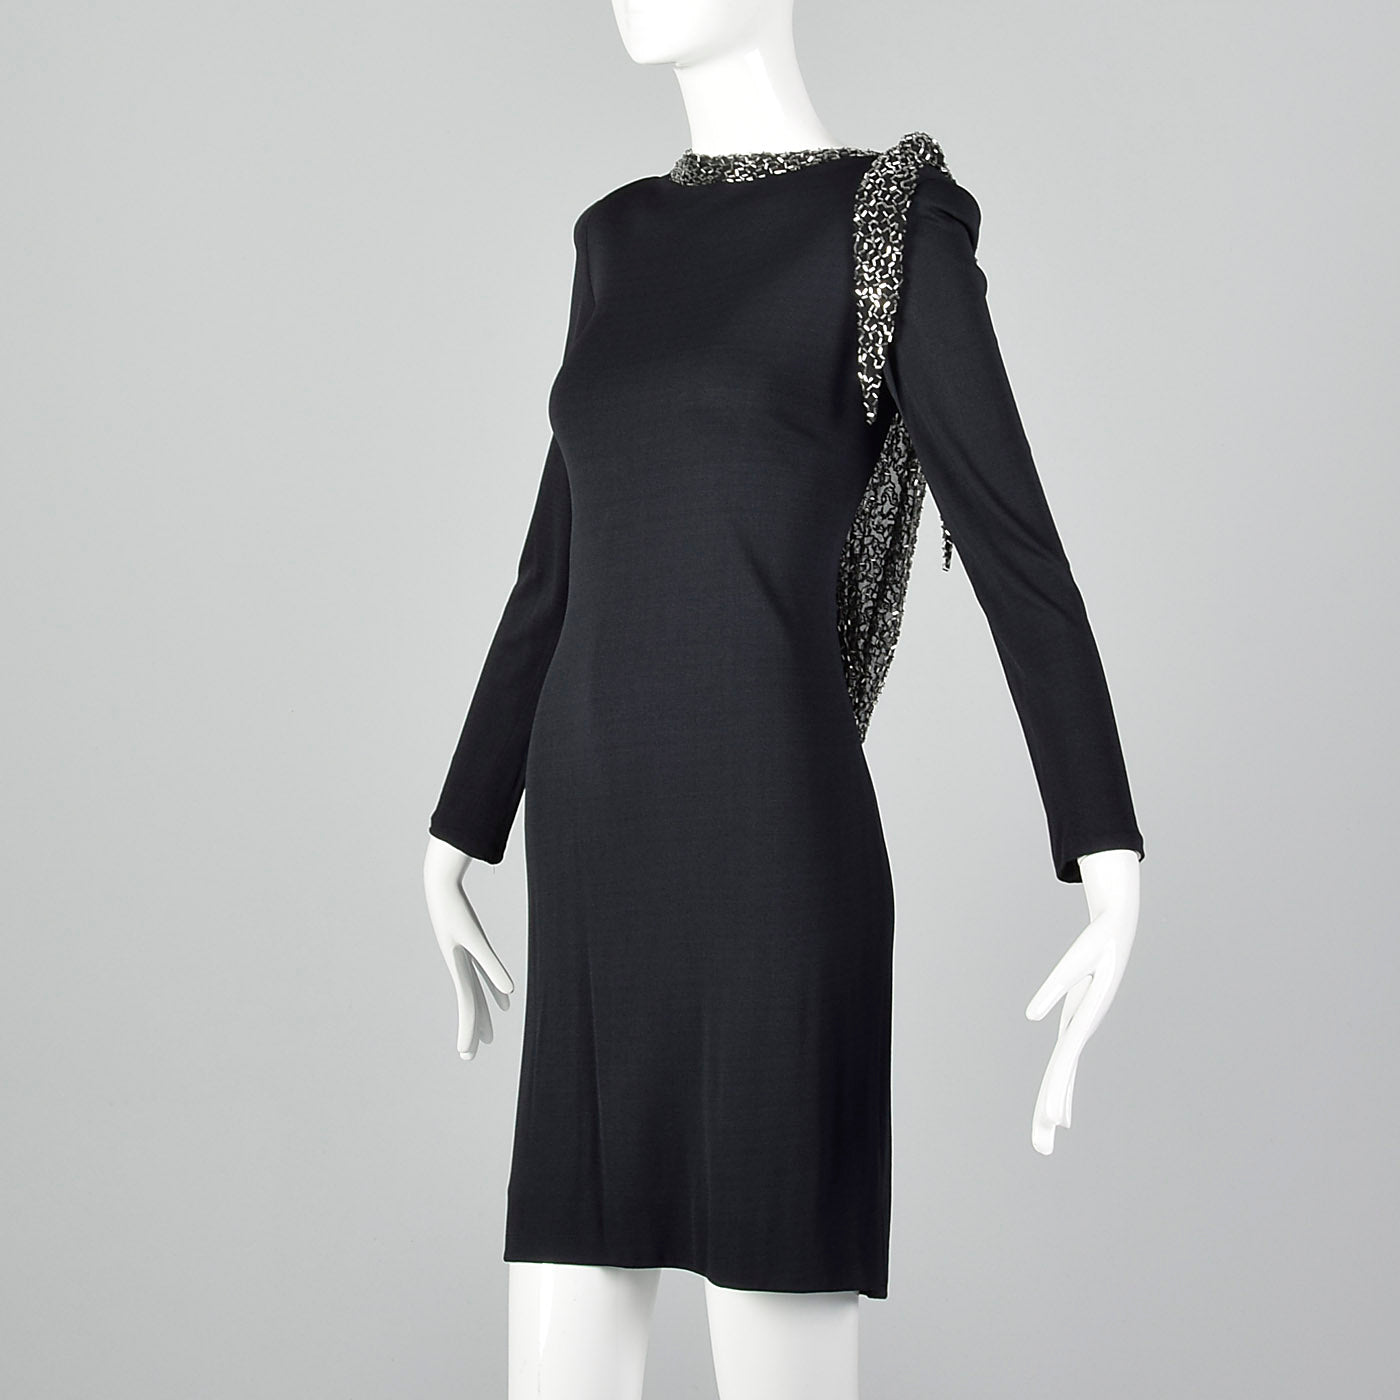 1990s Bob Mackie Black Dress with Low Cut Beaded Back